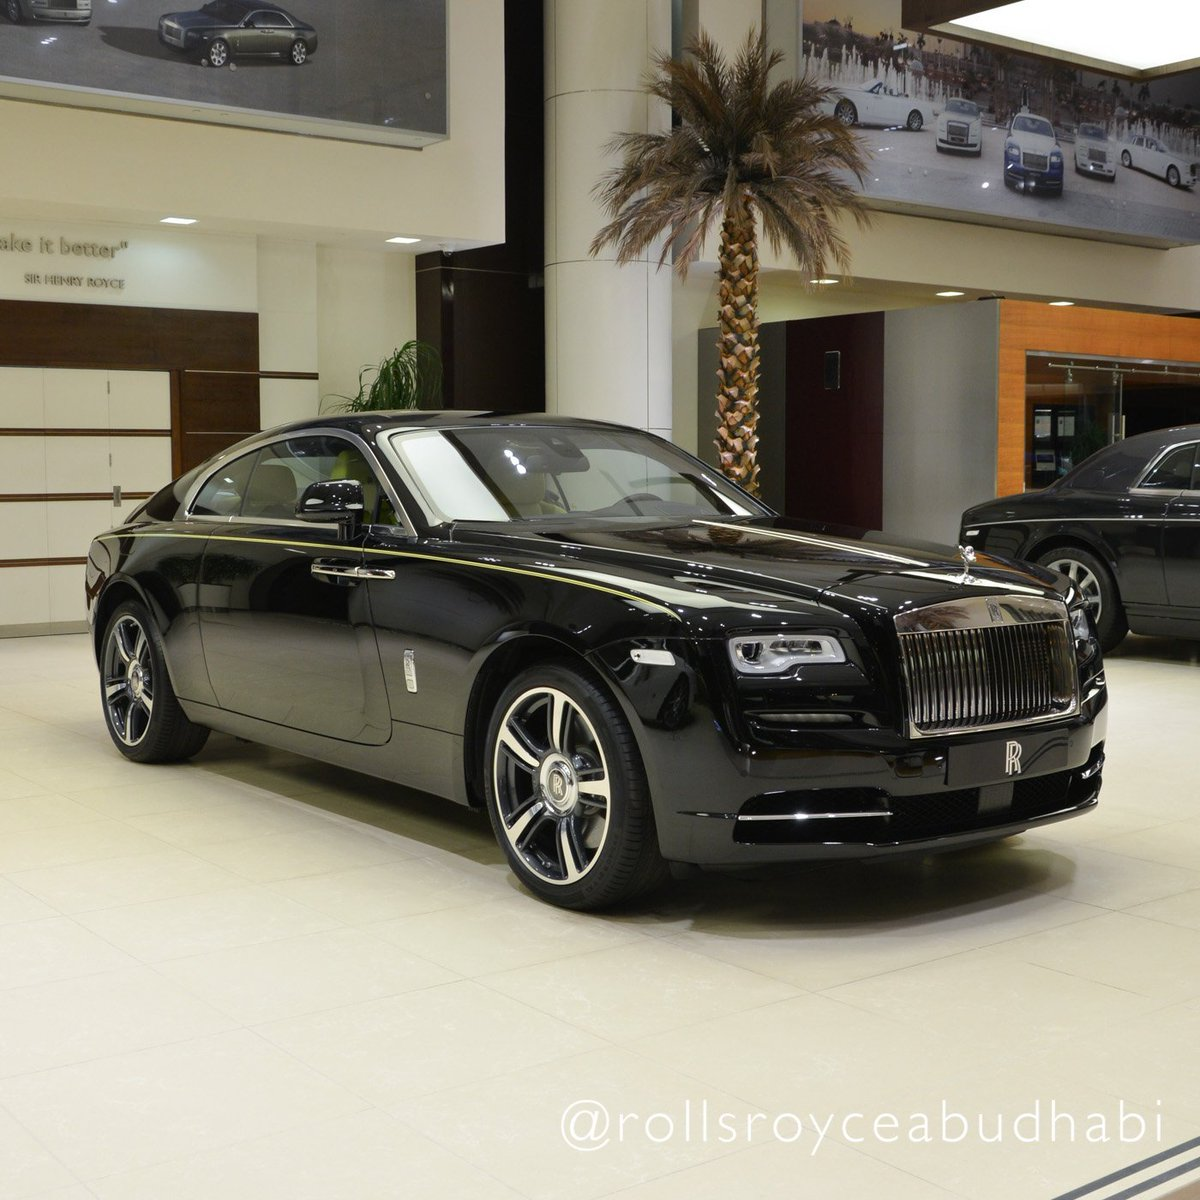 Rolls Royce Motor Cars Abu Dhabi On Twitter Rolls Royce Wraith With Main Exterior Colour In Diamond Black With Bespoke Interior In Lemon And Black Contrast Rollsroyceabudhabi Https T Co 4z2ogvrpd7